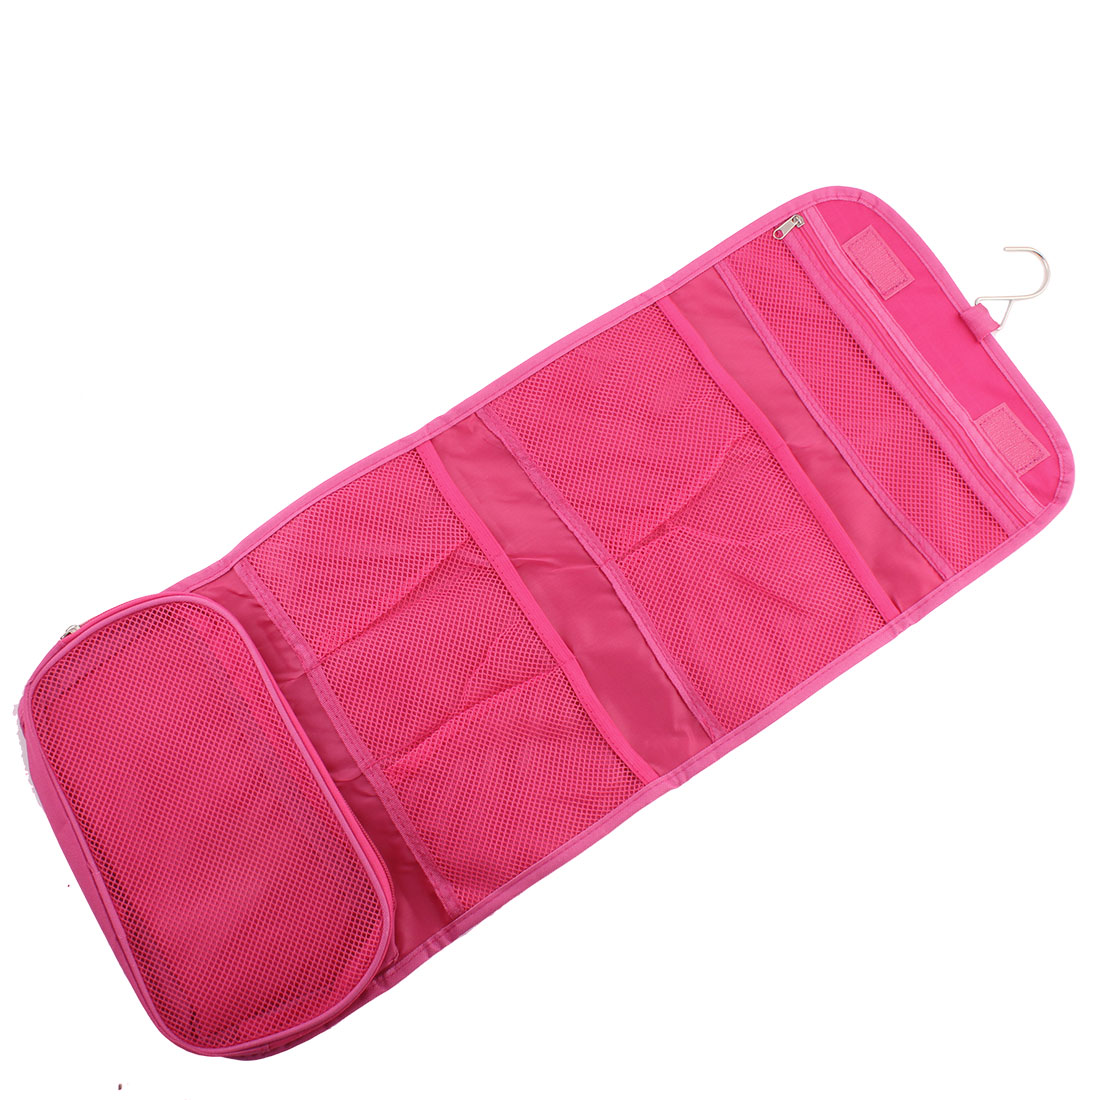 Travel Household Nylon Zippered Clothes Cosmetic Bag Organizer Fuchsia